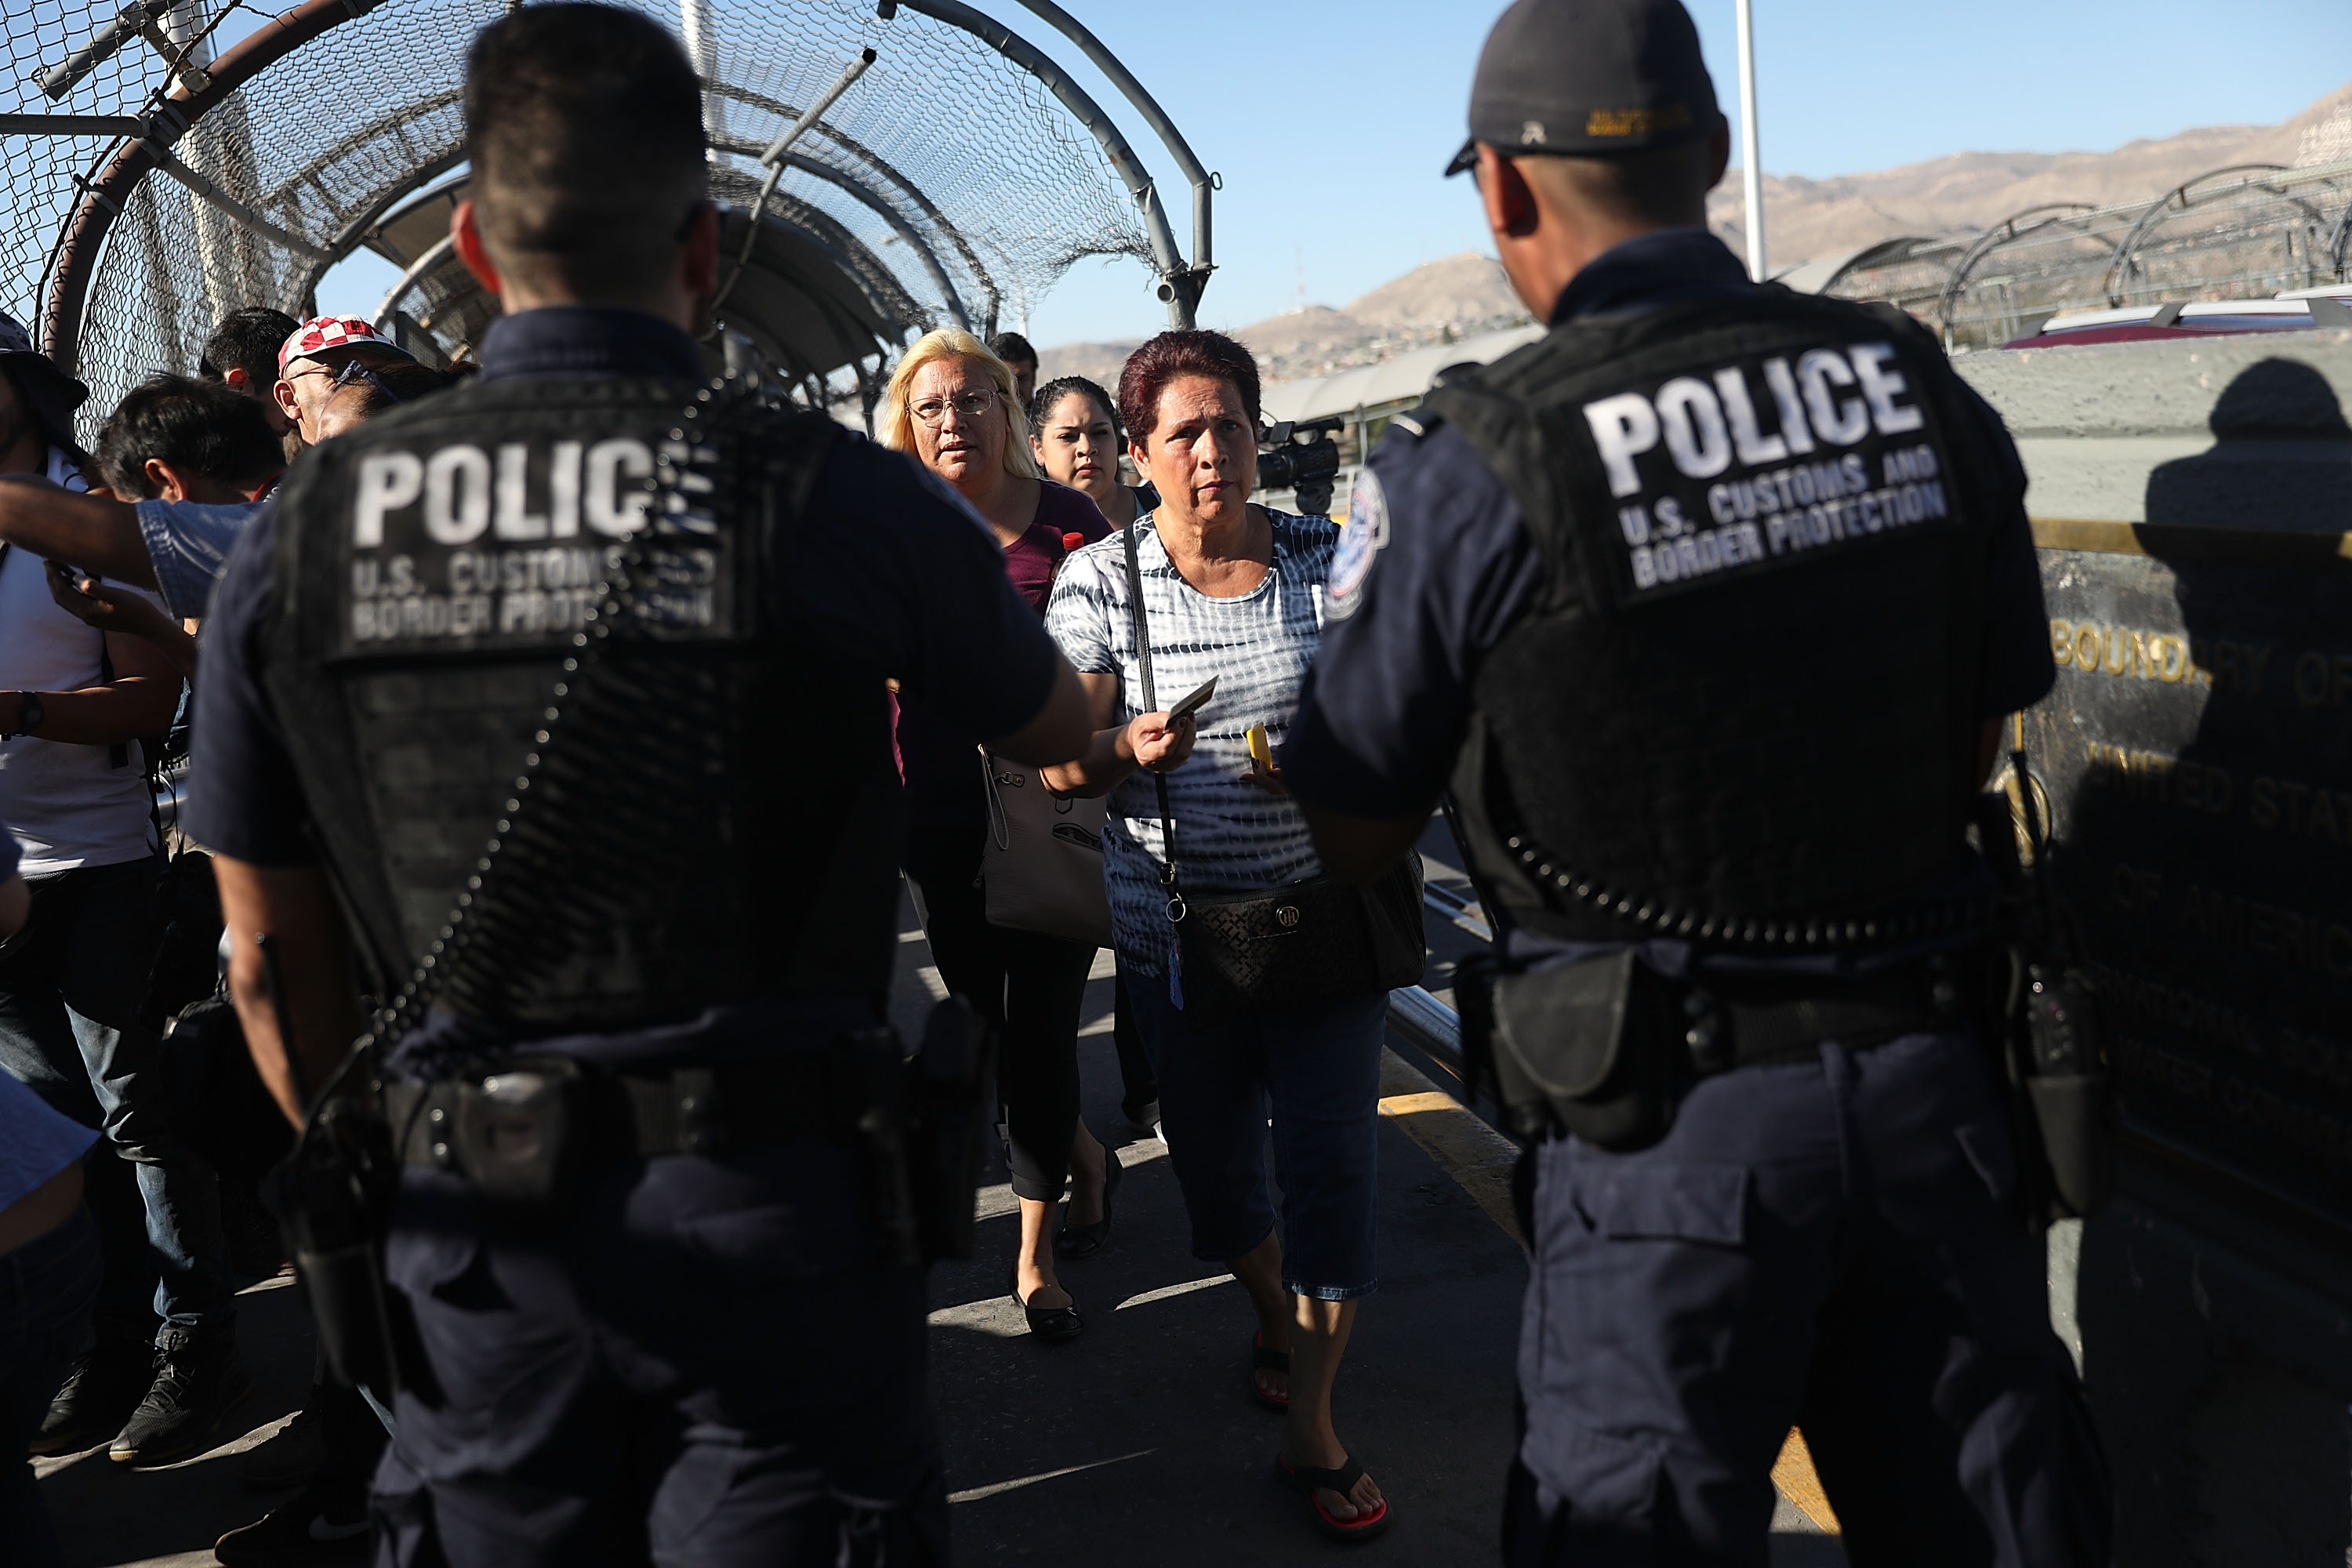 U.S. Border Patrol agents check passports at the Paso Del Norte Port of Entry, where the U.S. and Mexico border meet, as people walk across the bridge to enter the United States on June 20, 2018 in El Paso, Texas.